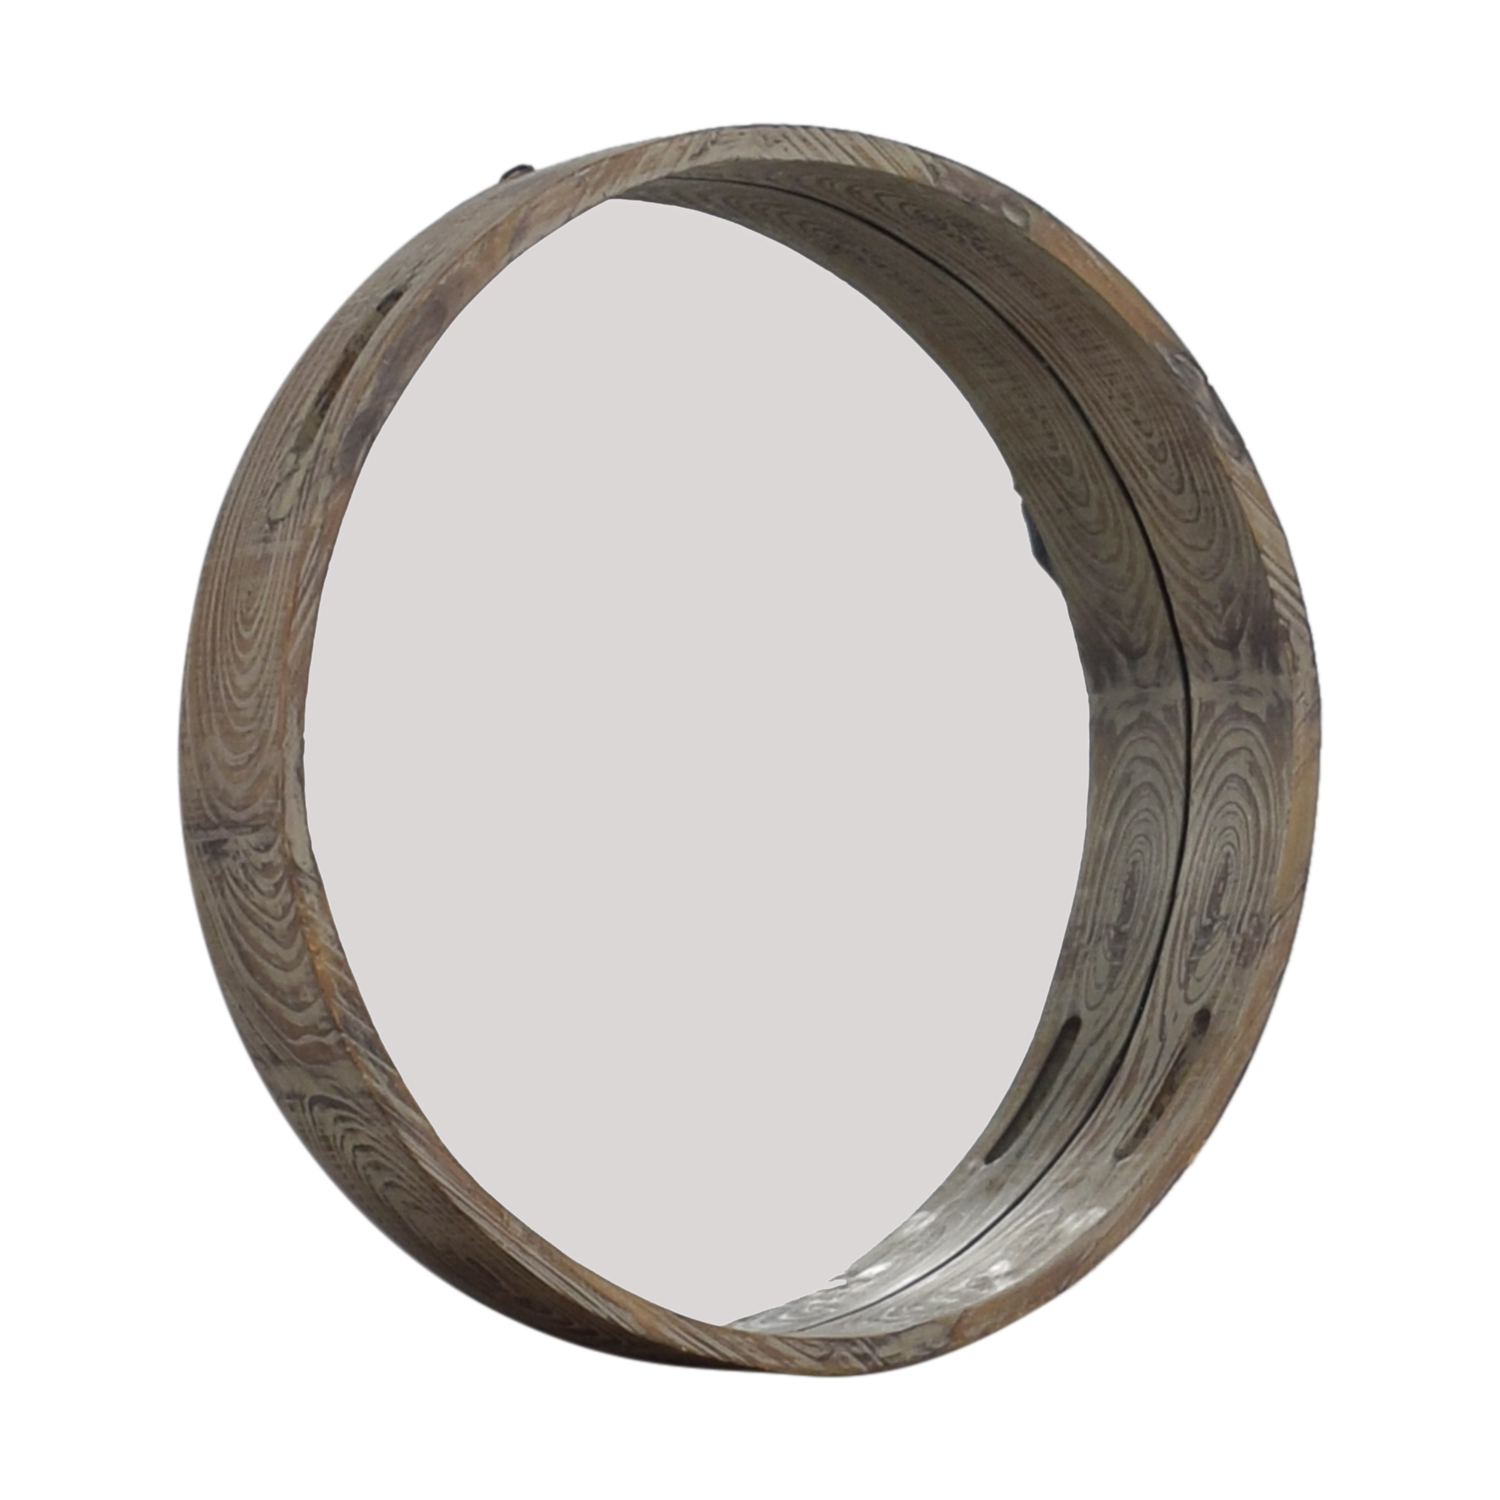 Mercana Mercana Industrial Deep Wood Inset Wall Mirror nyc